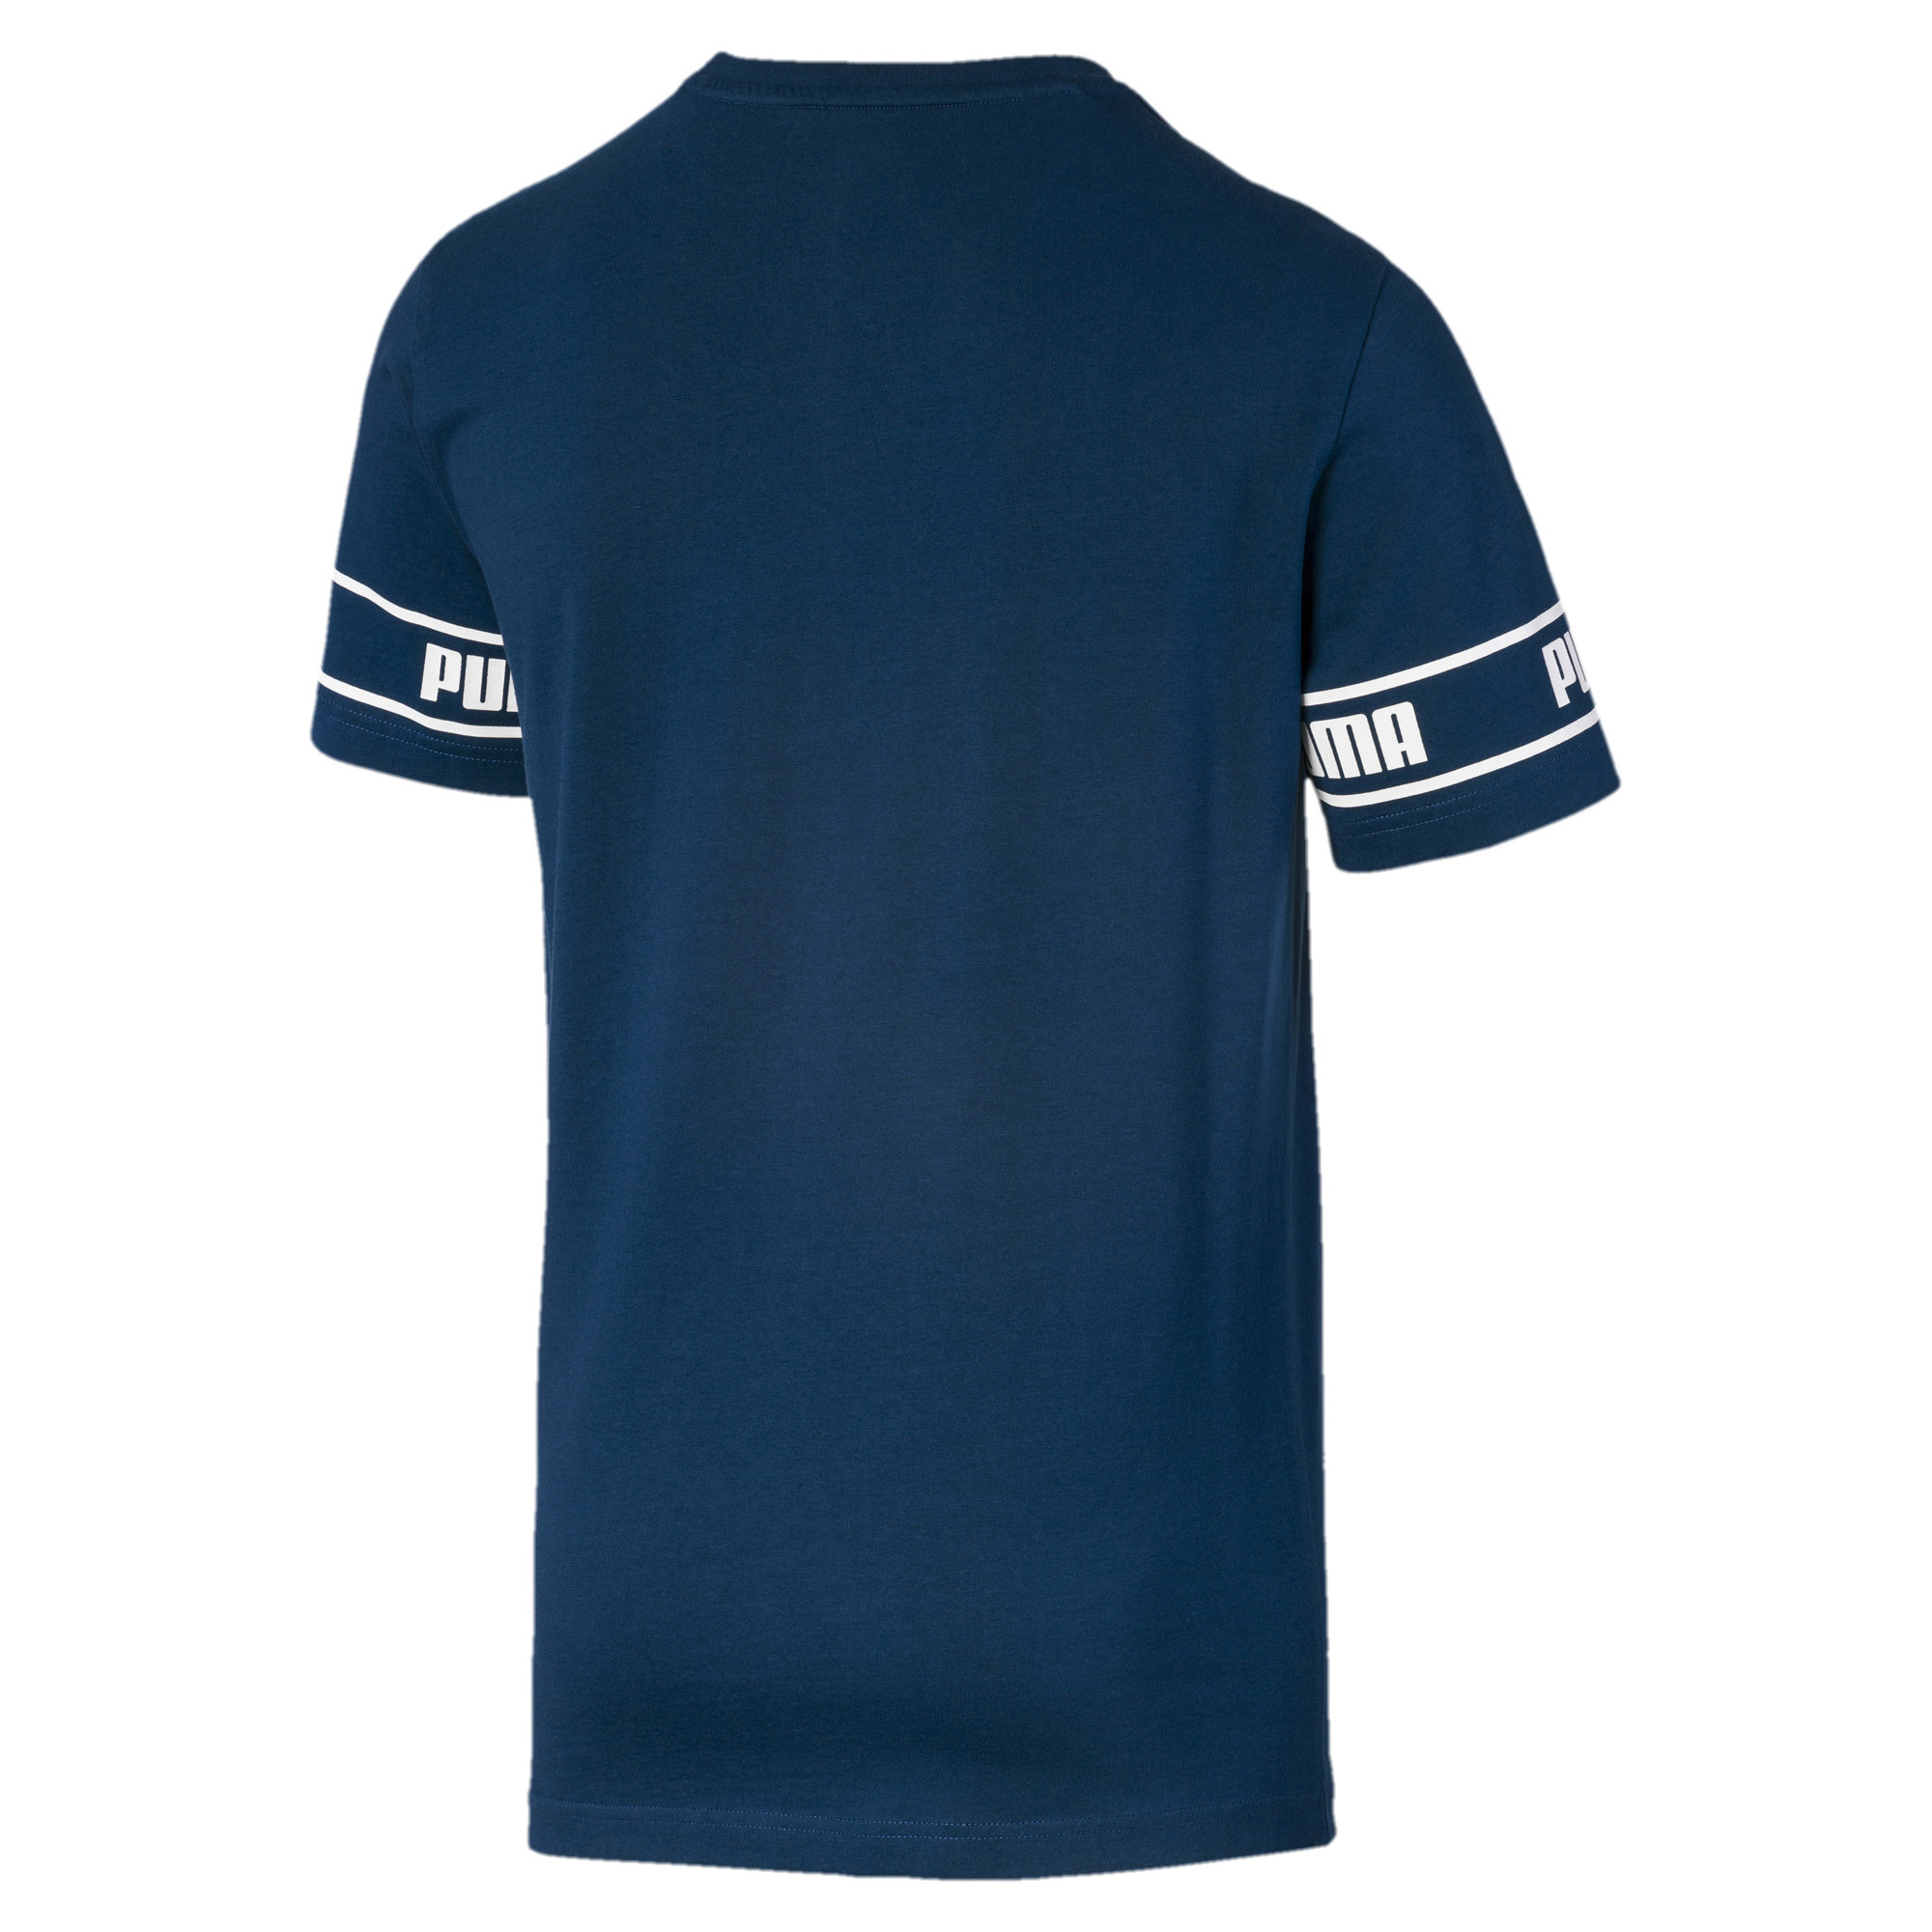 PUMA-Amplified-Men-039-s-Big-Logo-Tee-Men-Tee-Basics thumbnail 26